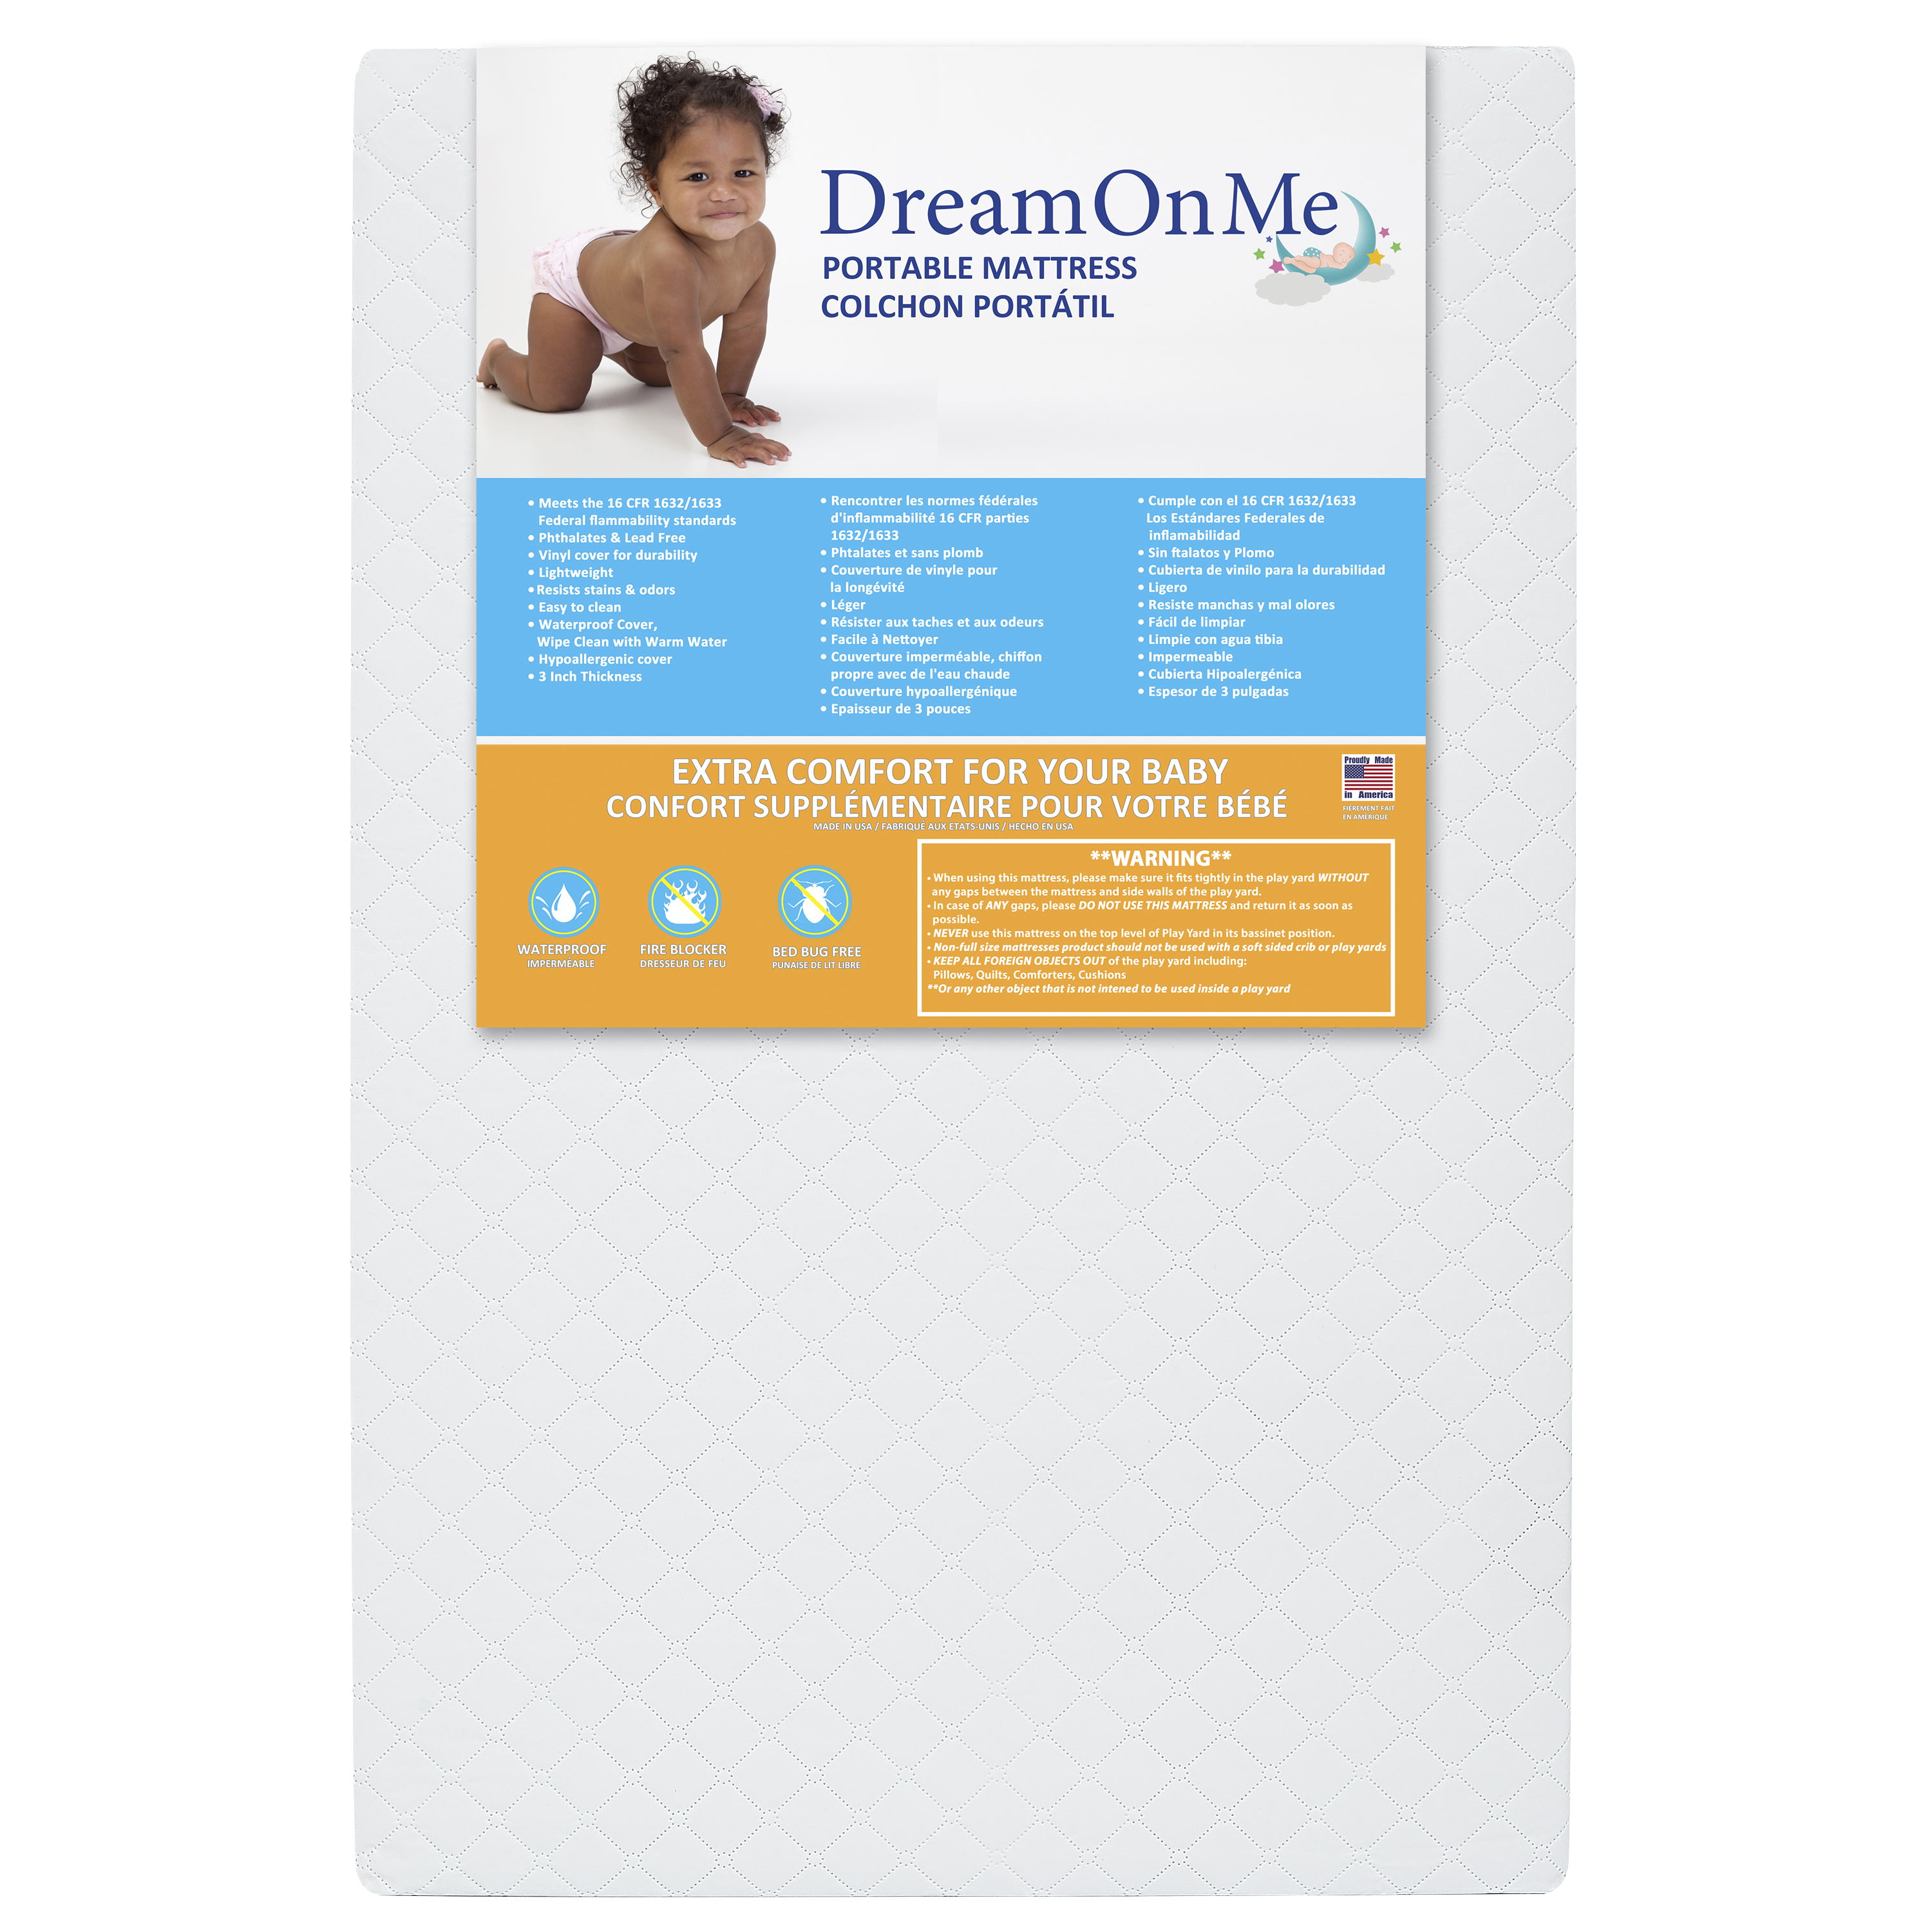 Dream On Me, 3'' Extra Firm Mini Portable Crib Mattress, White by Dream On Me